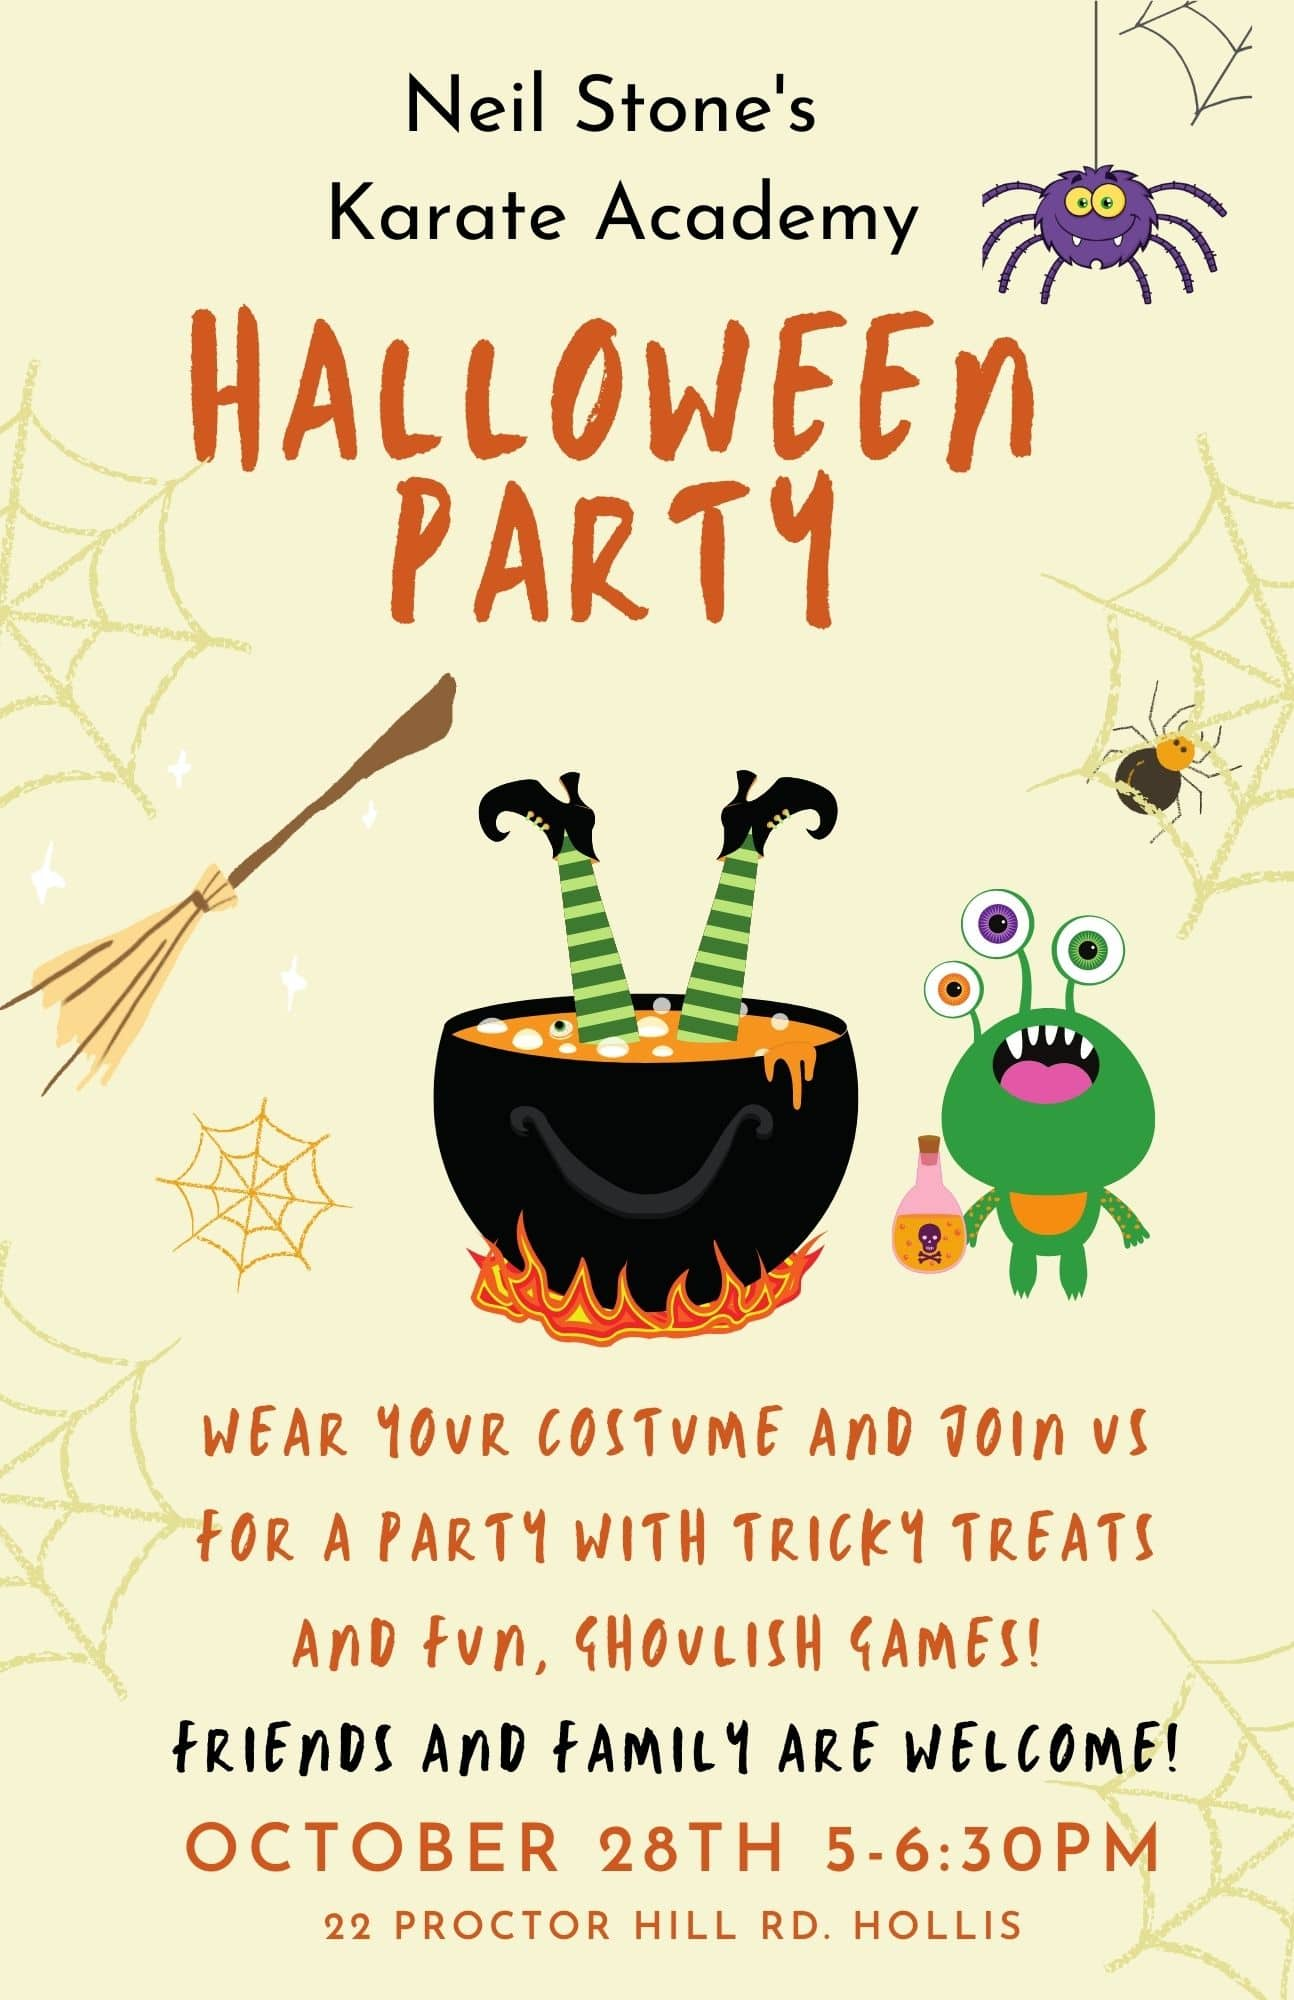 Halloween Party – October 28th